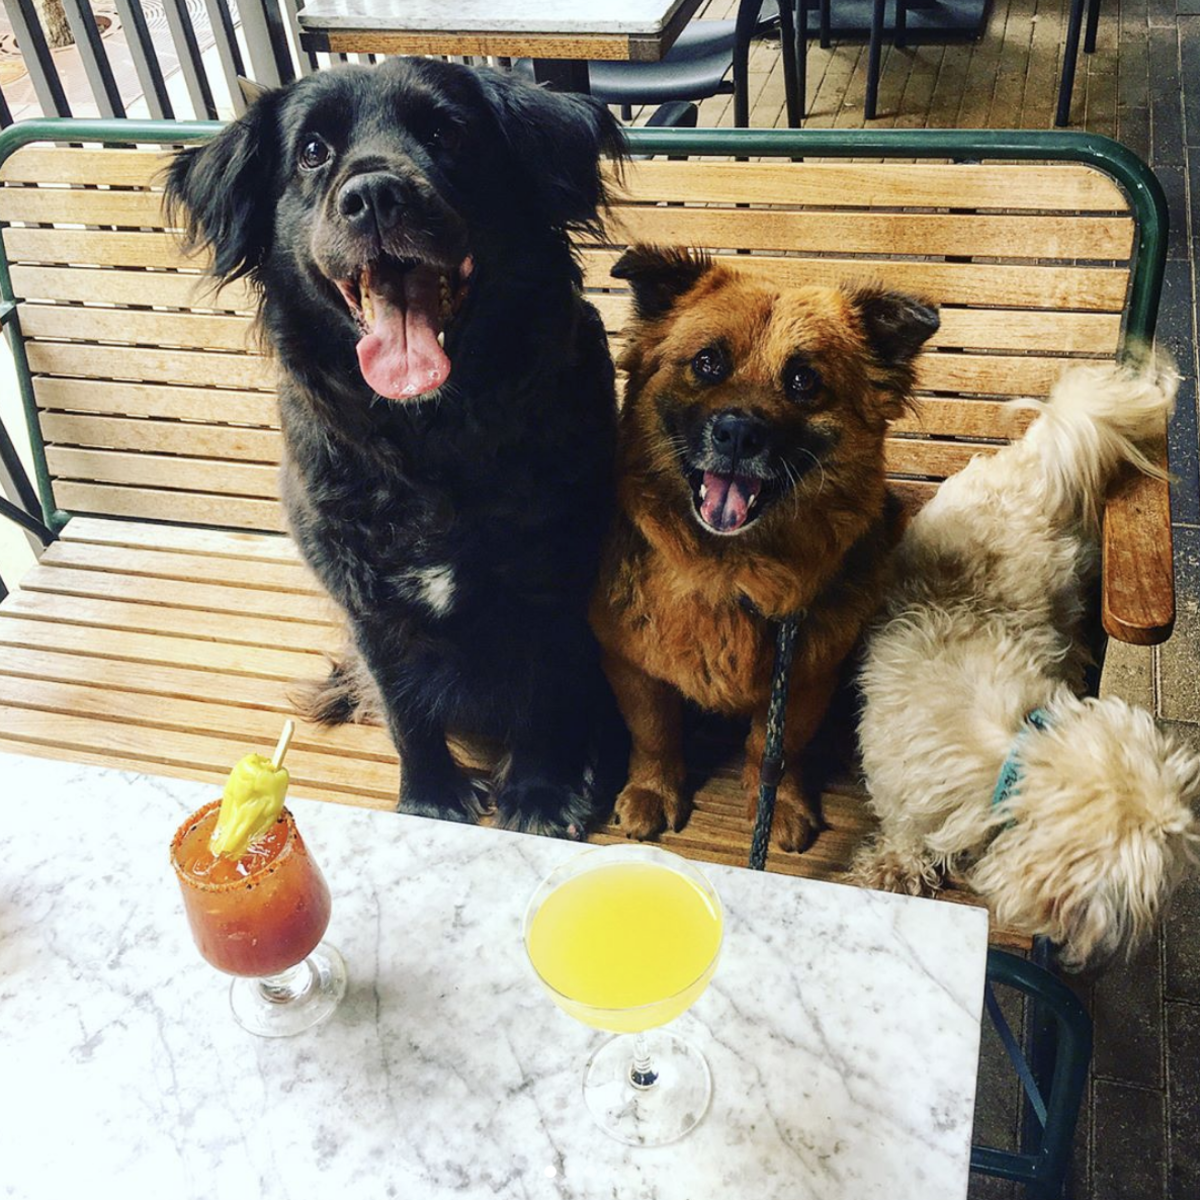 Dogs on a patio